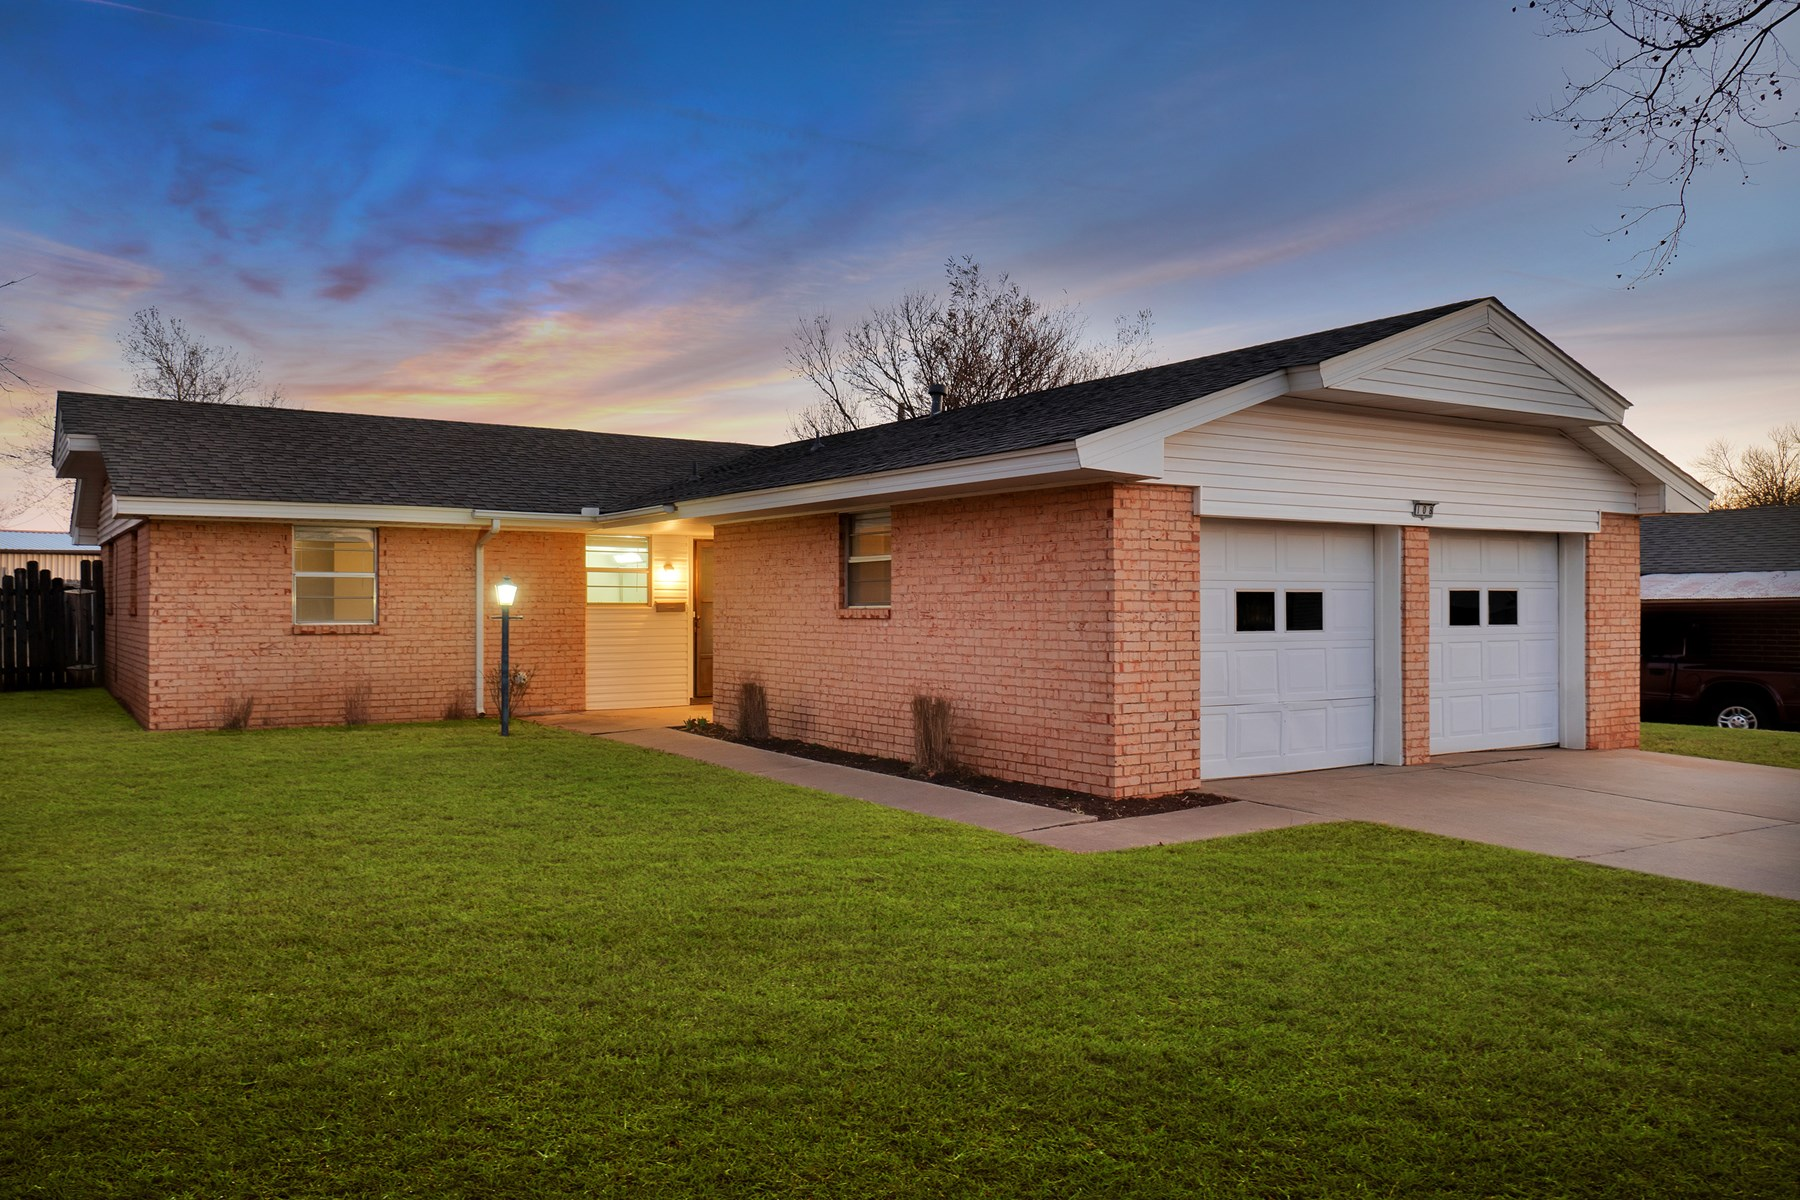 REMODELED HOME FOR SALE IN ELK CITY WITH 3 BEDROOMS